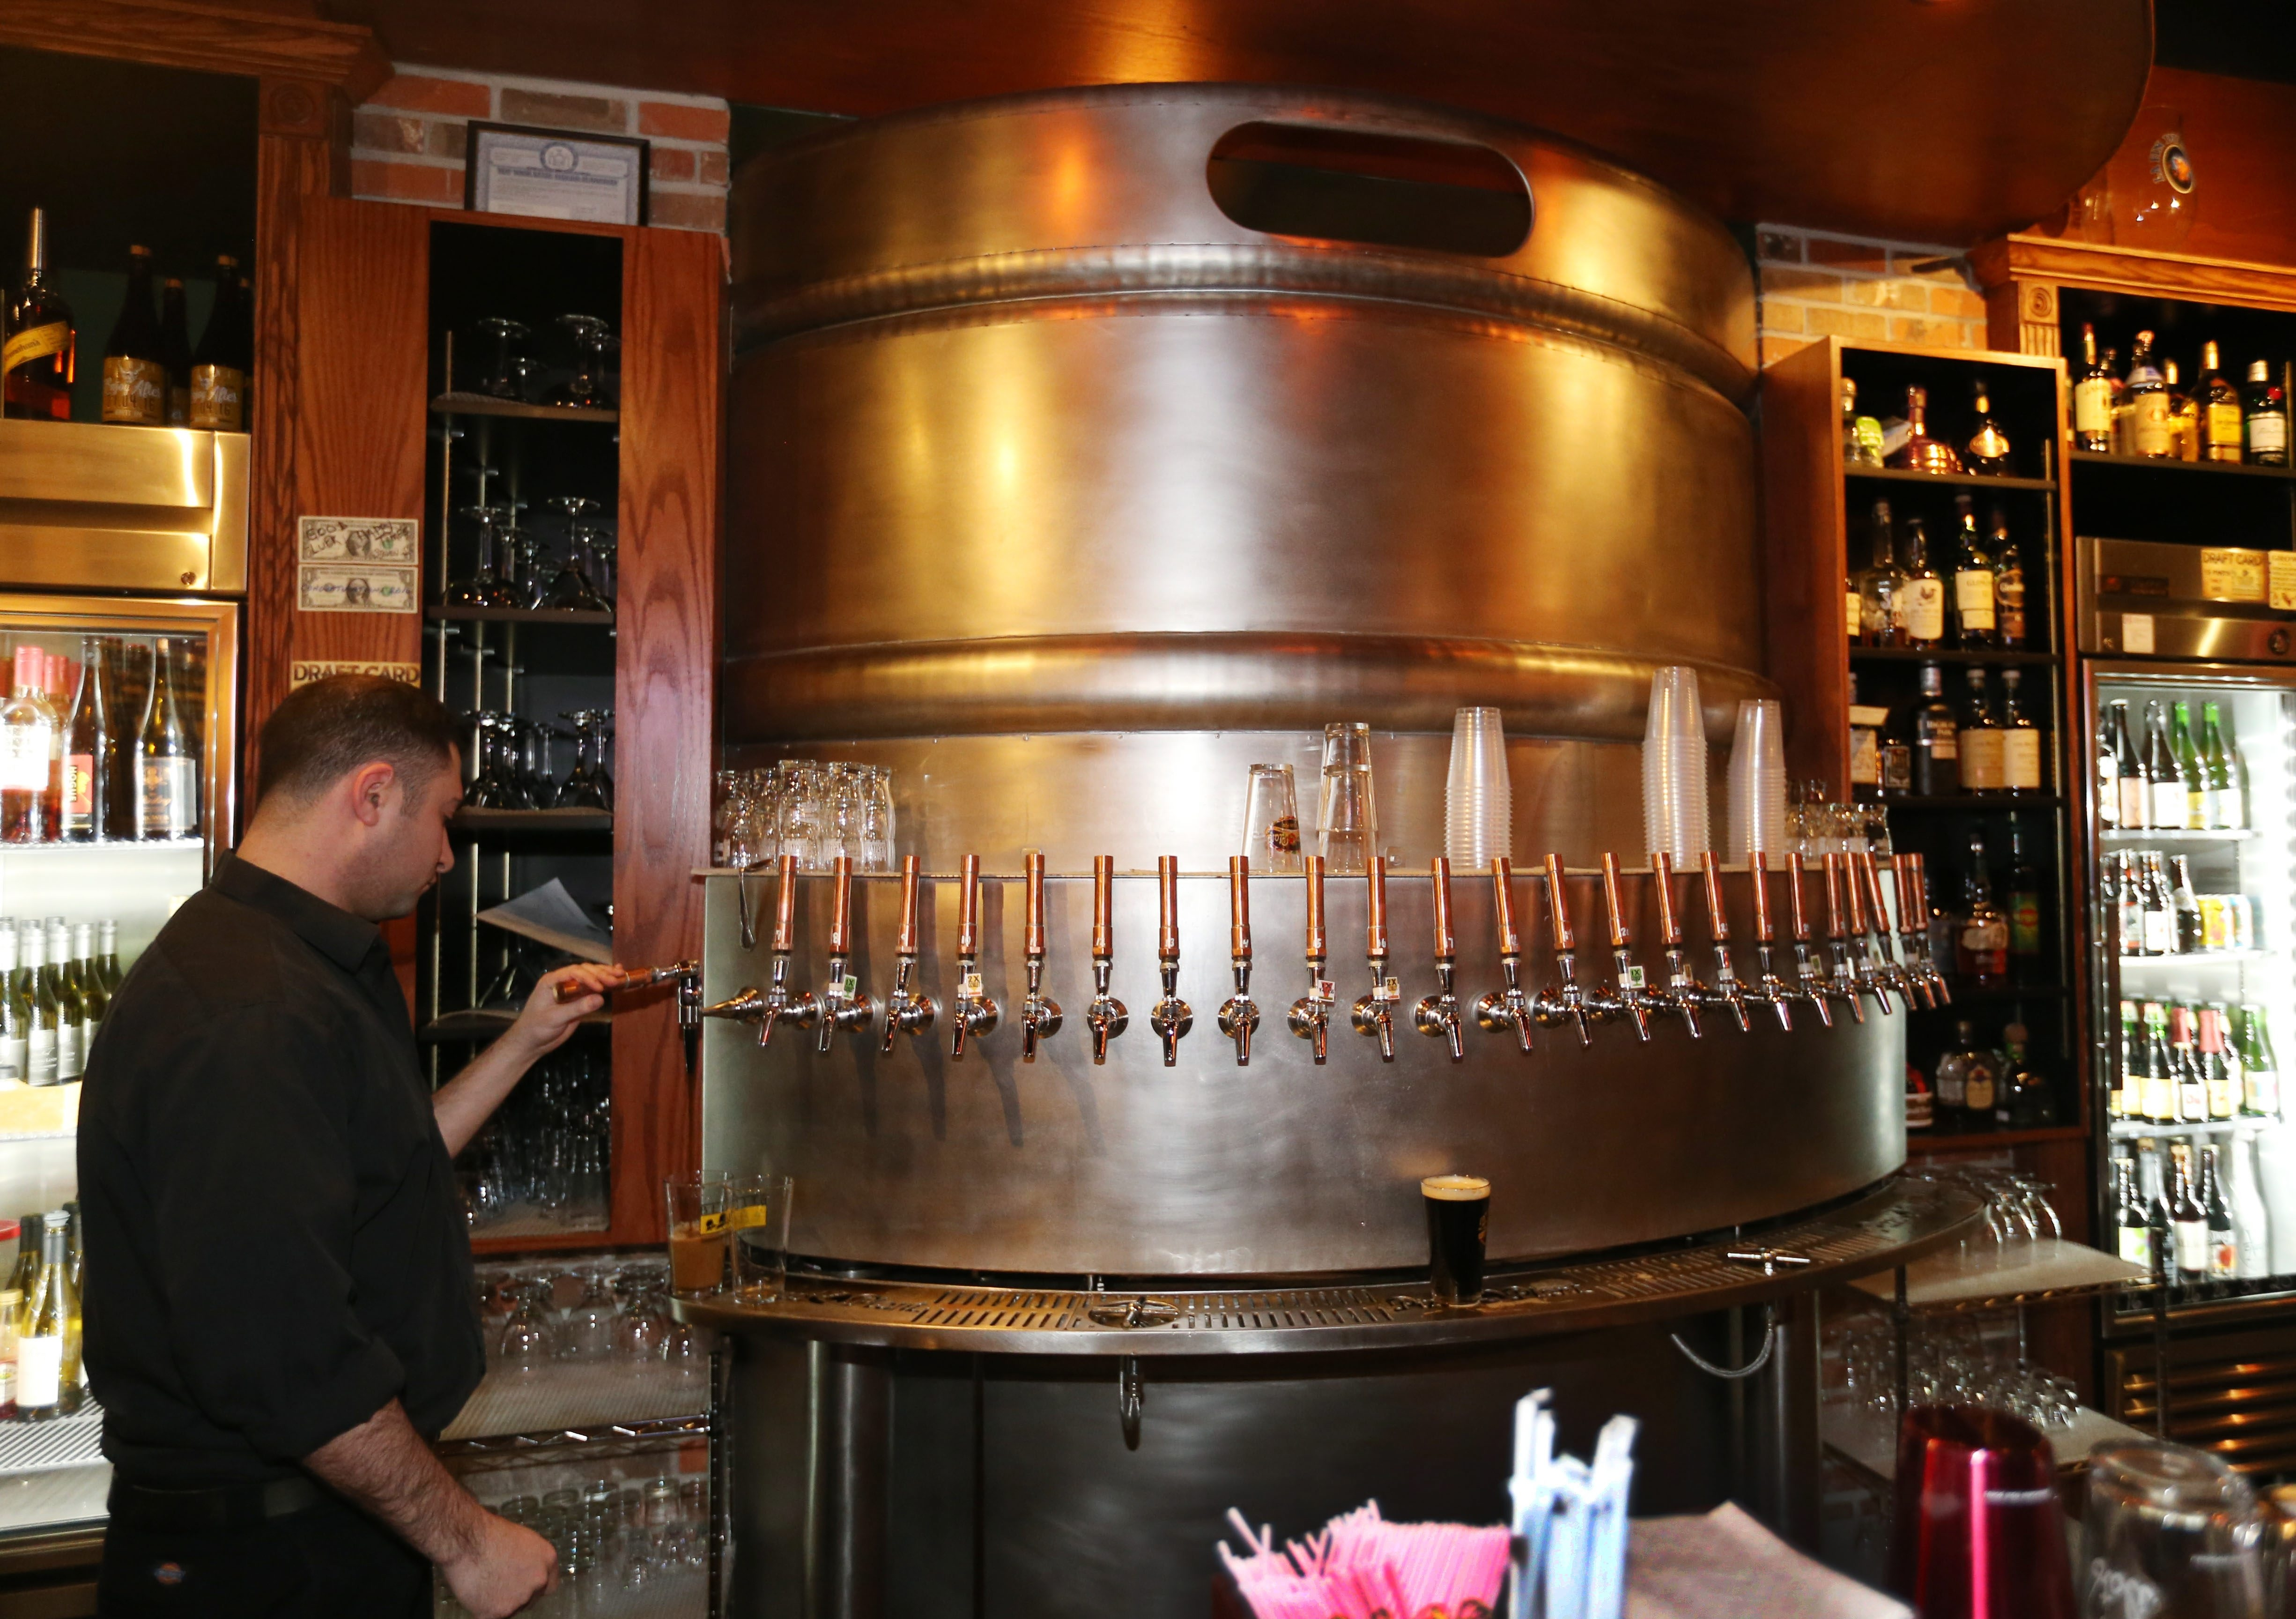 Pizza Plant Italian Pub on the ground floor next to the Courtyard Marriott at 125 Main St. in downtown Buffalo. Their beers are housed in what appears to be a giant keg. (Sharon Cantillon/Buffalo News file photo)